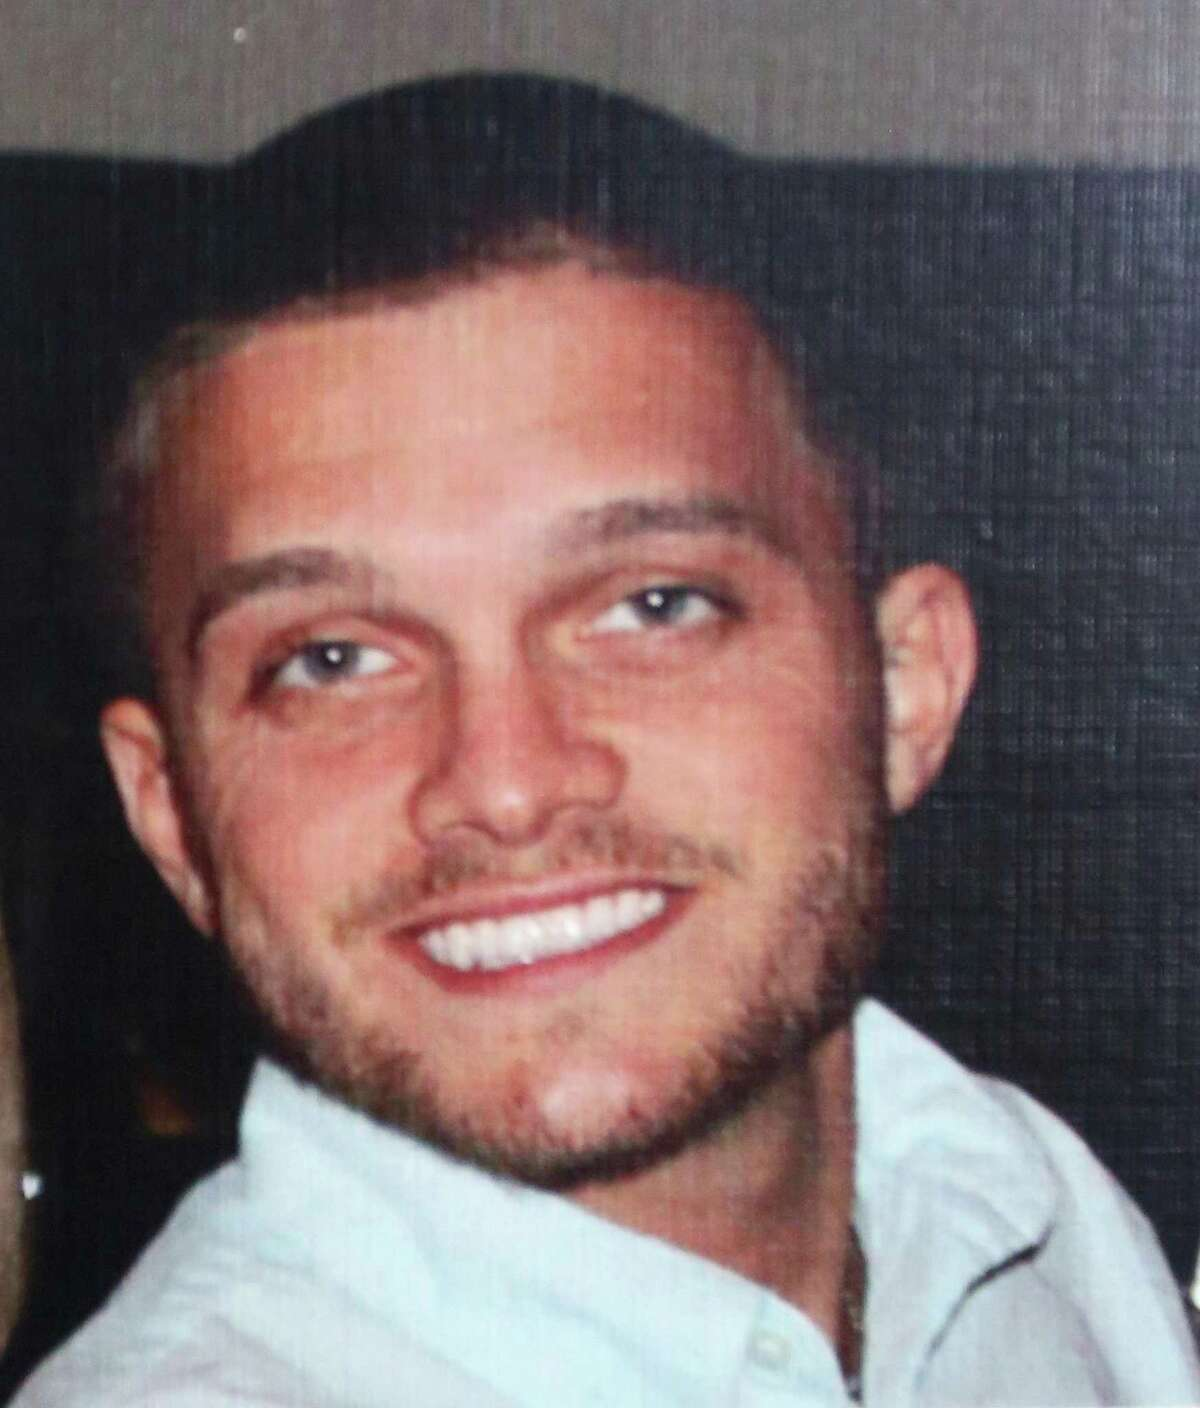 A photo of Dylan Pape, who was killed by SWAT officers in Stamford one month ago. Photographed on Wednesday, April 20, 2016.